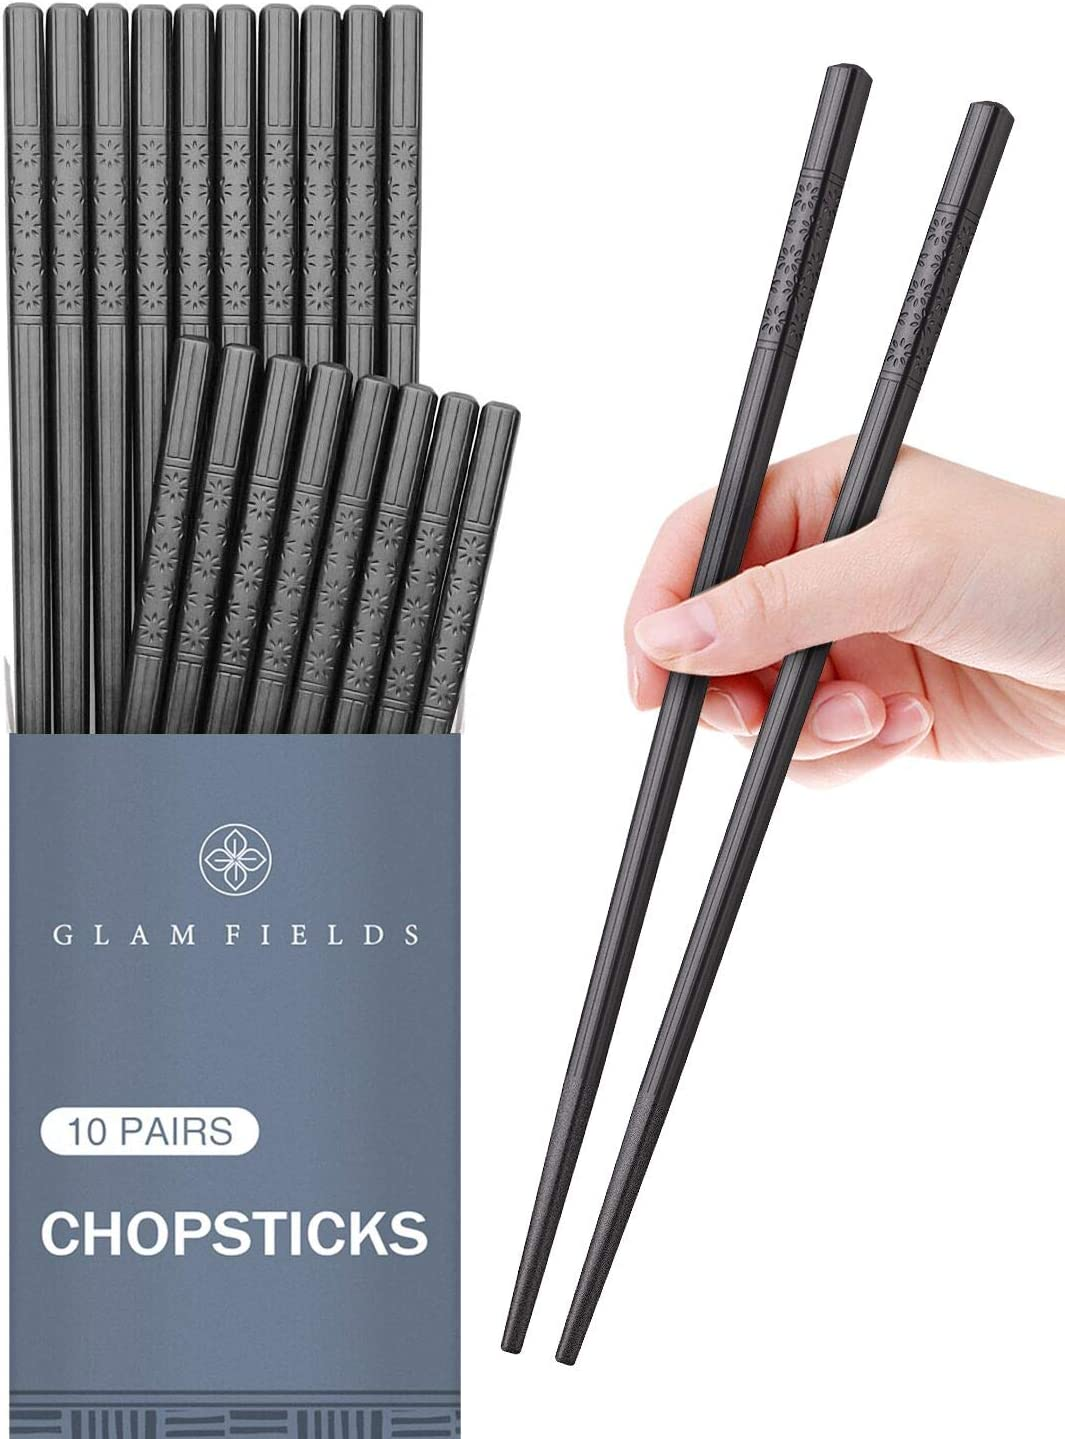 10 Pairs Fiberglass Alloy Chopsticks, GLAMFIELDS Reusable Japanese Chinese Korean Chop sticks Dishwasher Safe, Non-slip, 9 1/2 inches